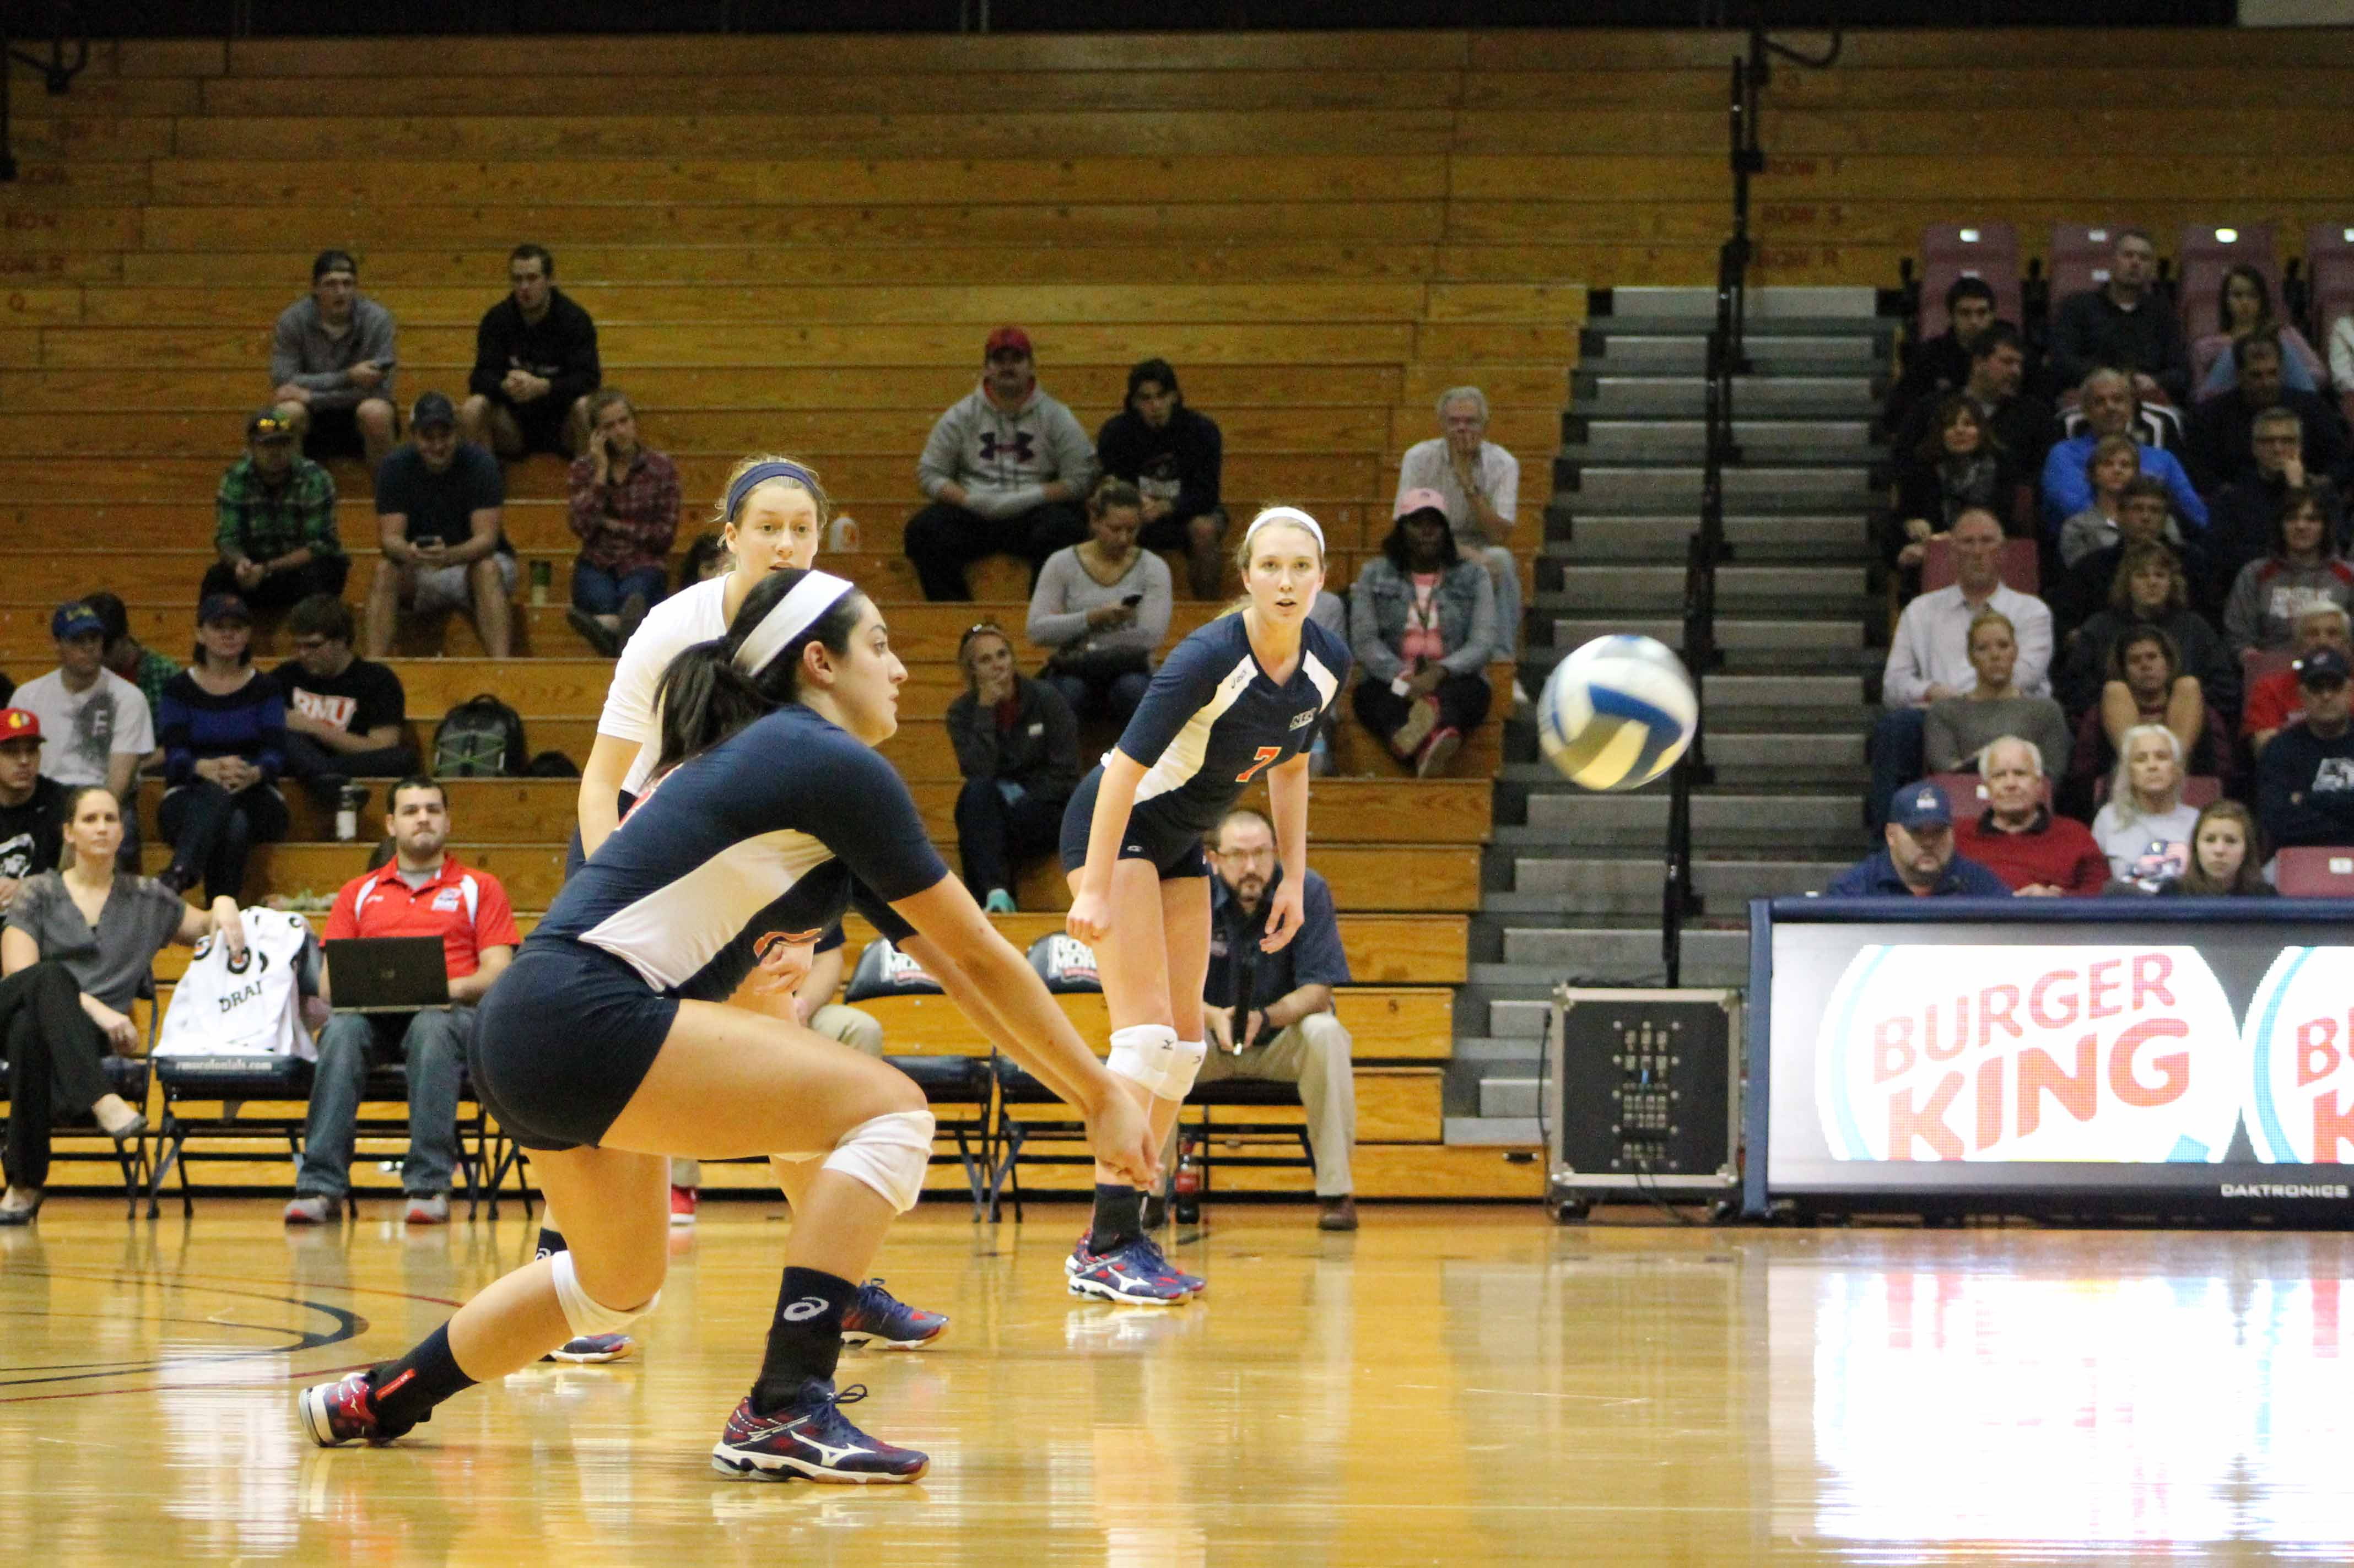 The Colonials fell on the road to Kent State Tuesday 3-0, ending their three game winning streak.